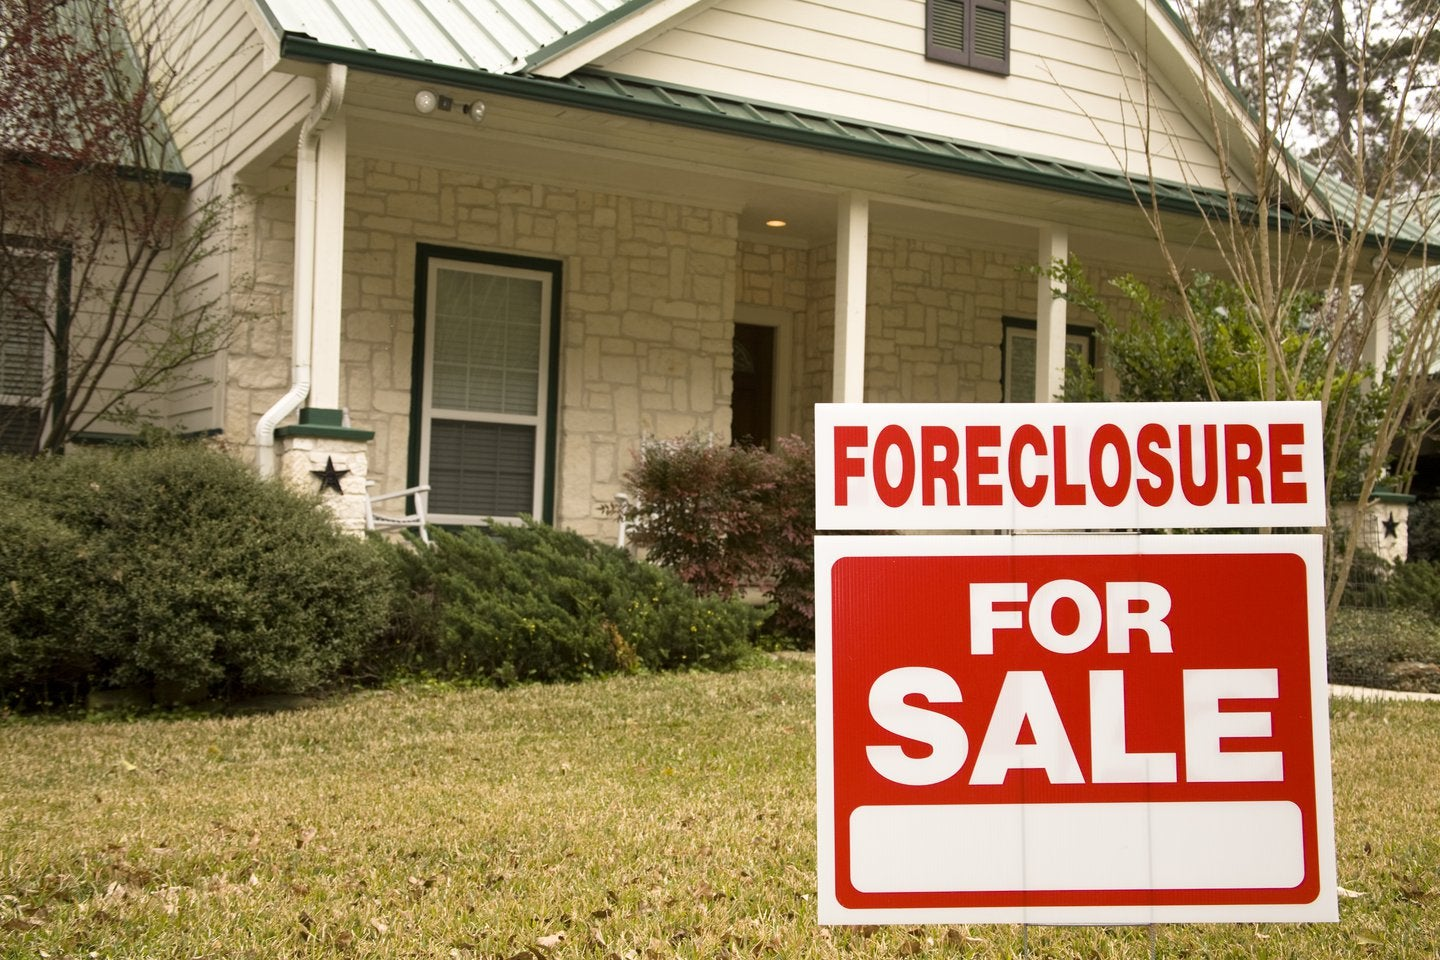 GET HOUSE OUT OF FORECLOSURE